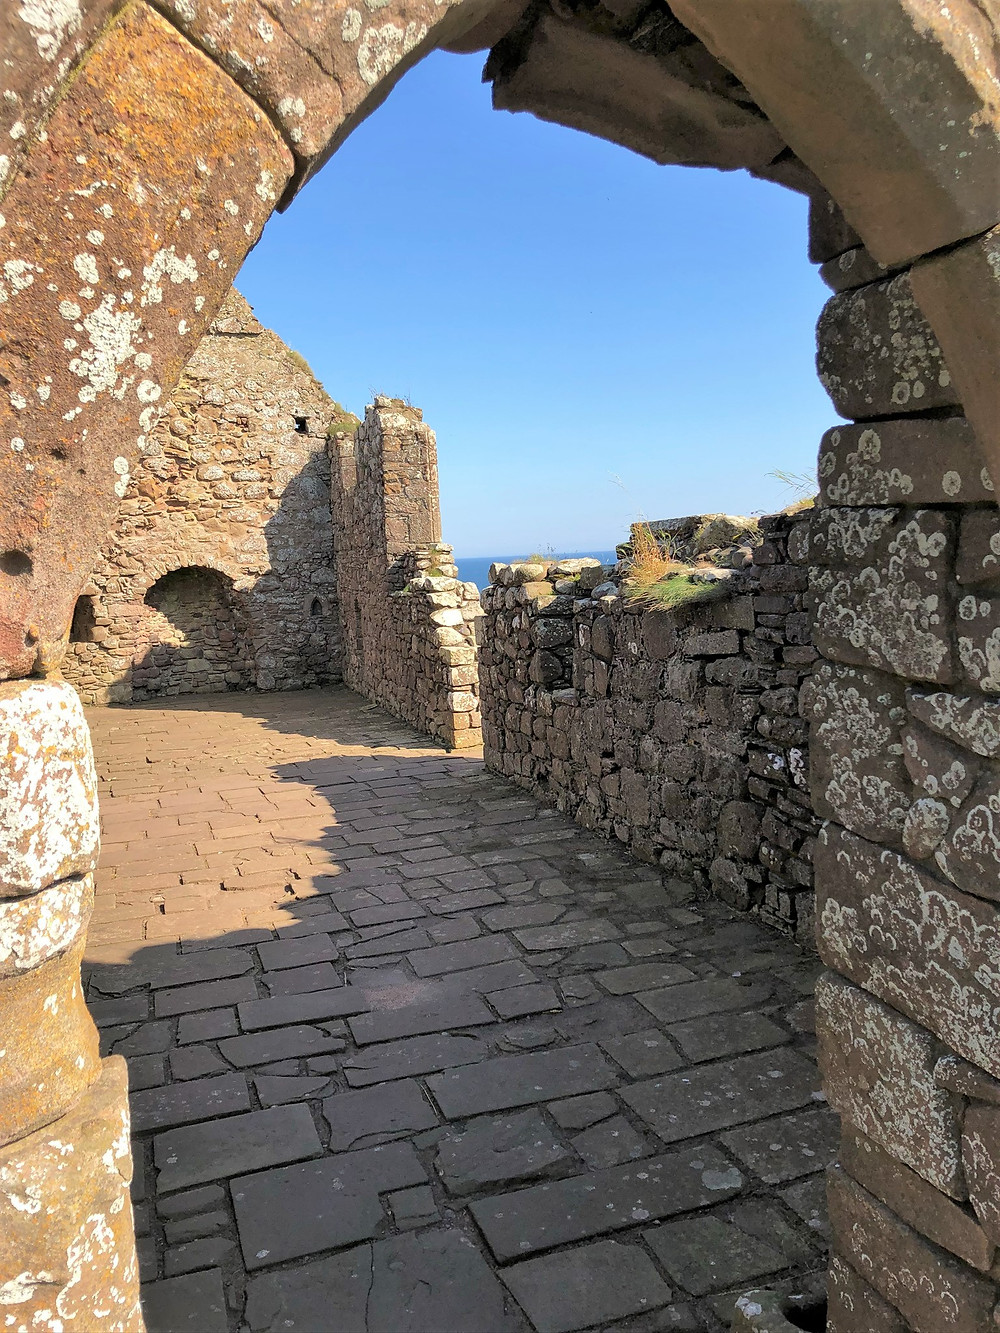 The Dunnottar Castle Chapel is the oldest surviving building on the rock and dates back, in part at least, to 1276.